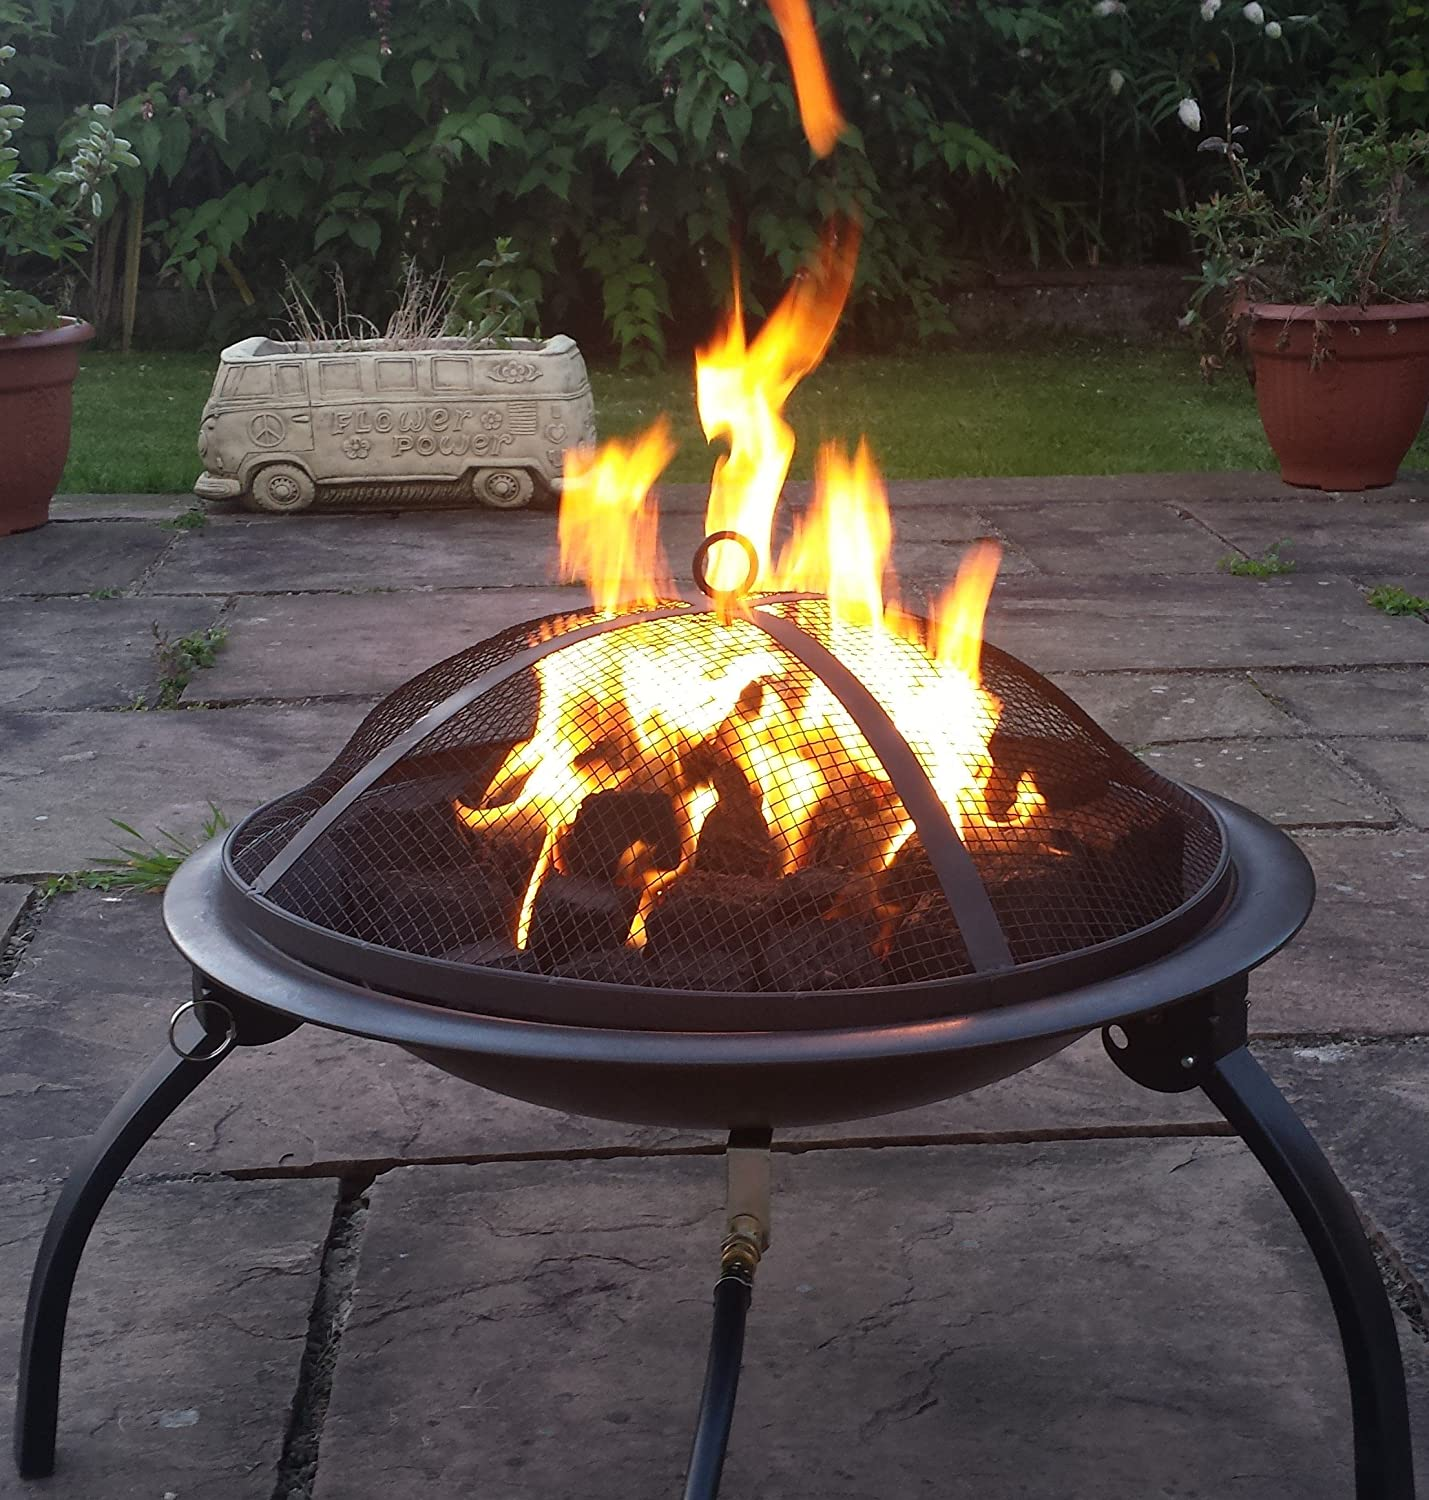 91w9J8LONTL. SL1500  Top Result 50 Awesome Propane Fire Pit Burner Gallery 2018 Hzt6